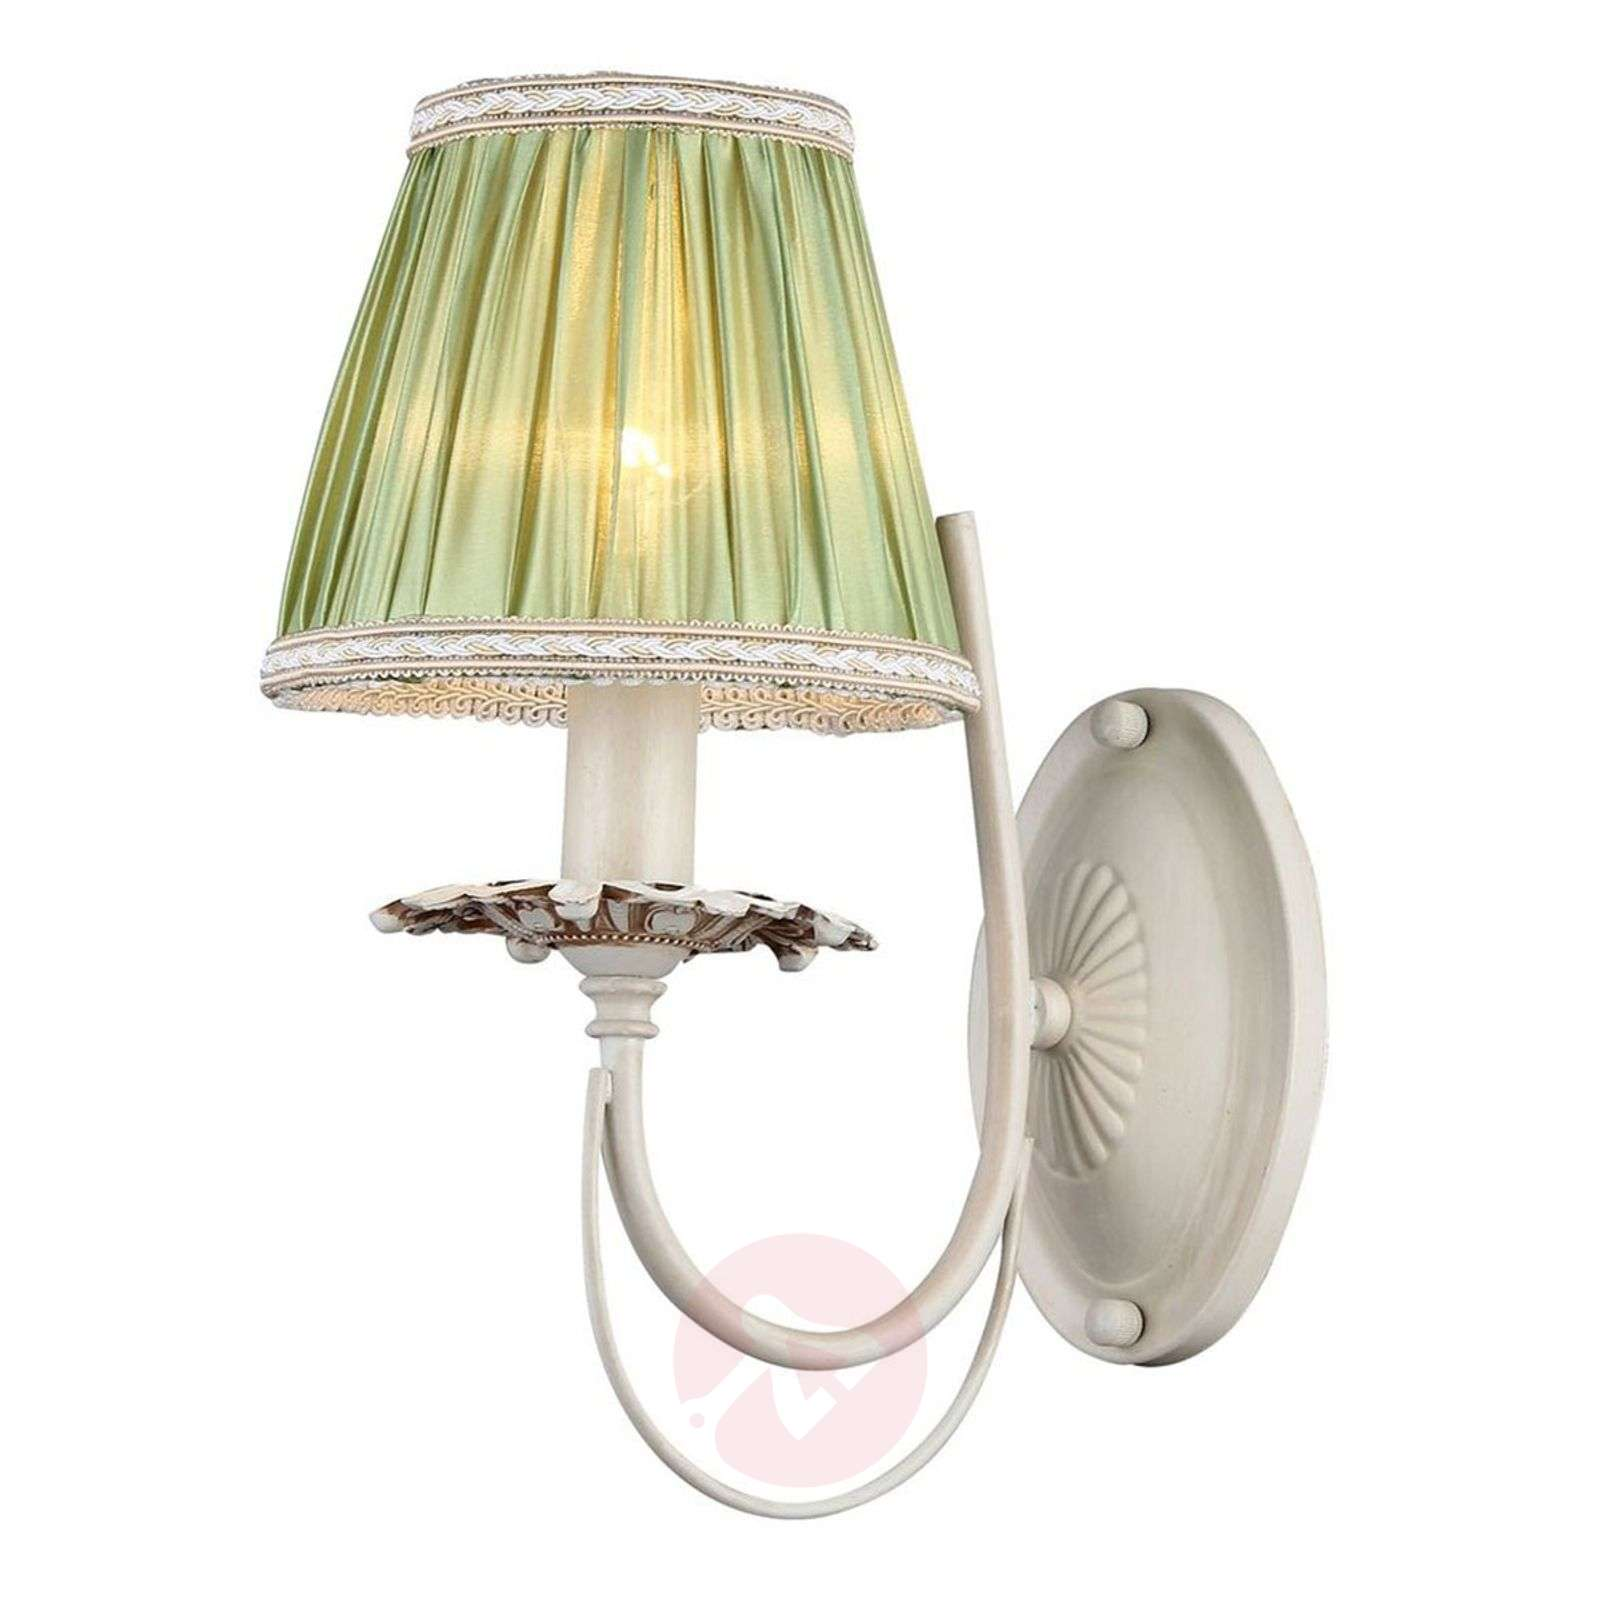 With green satin lampshade Olivia wall light Lights.co.uk